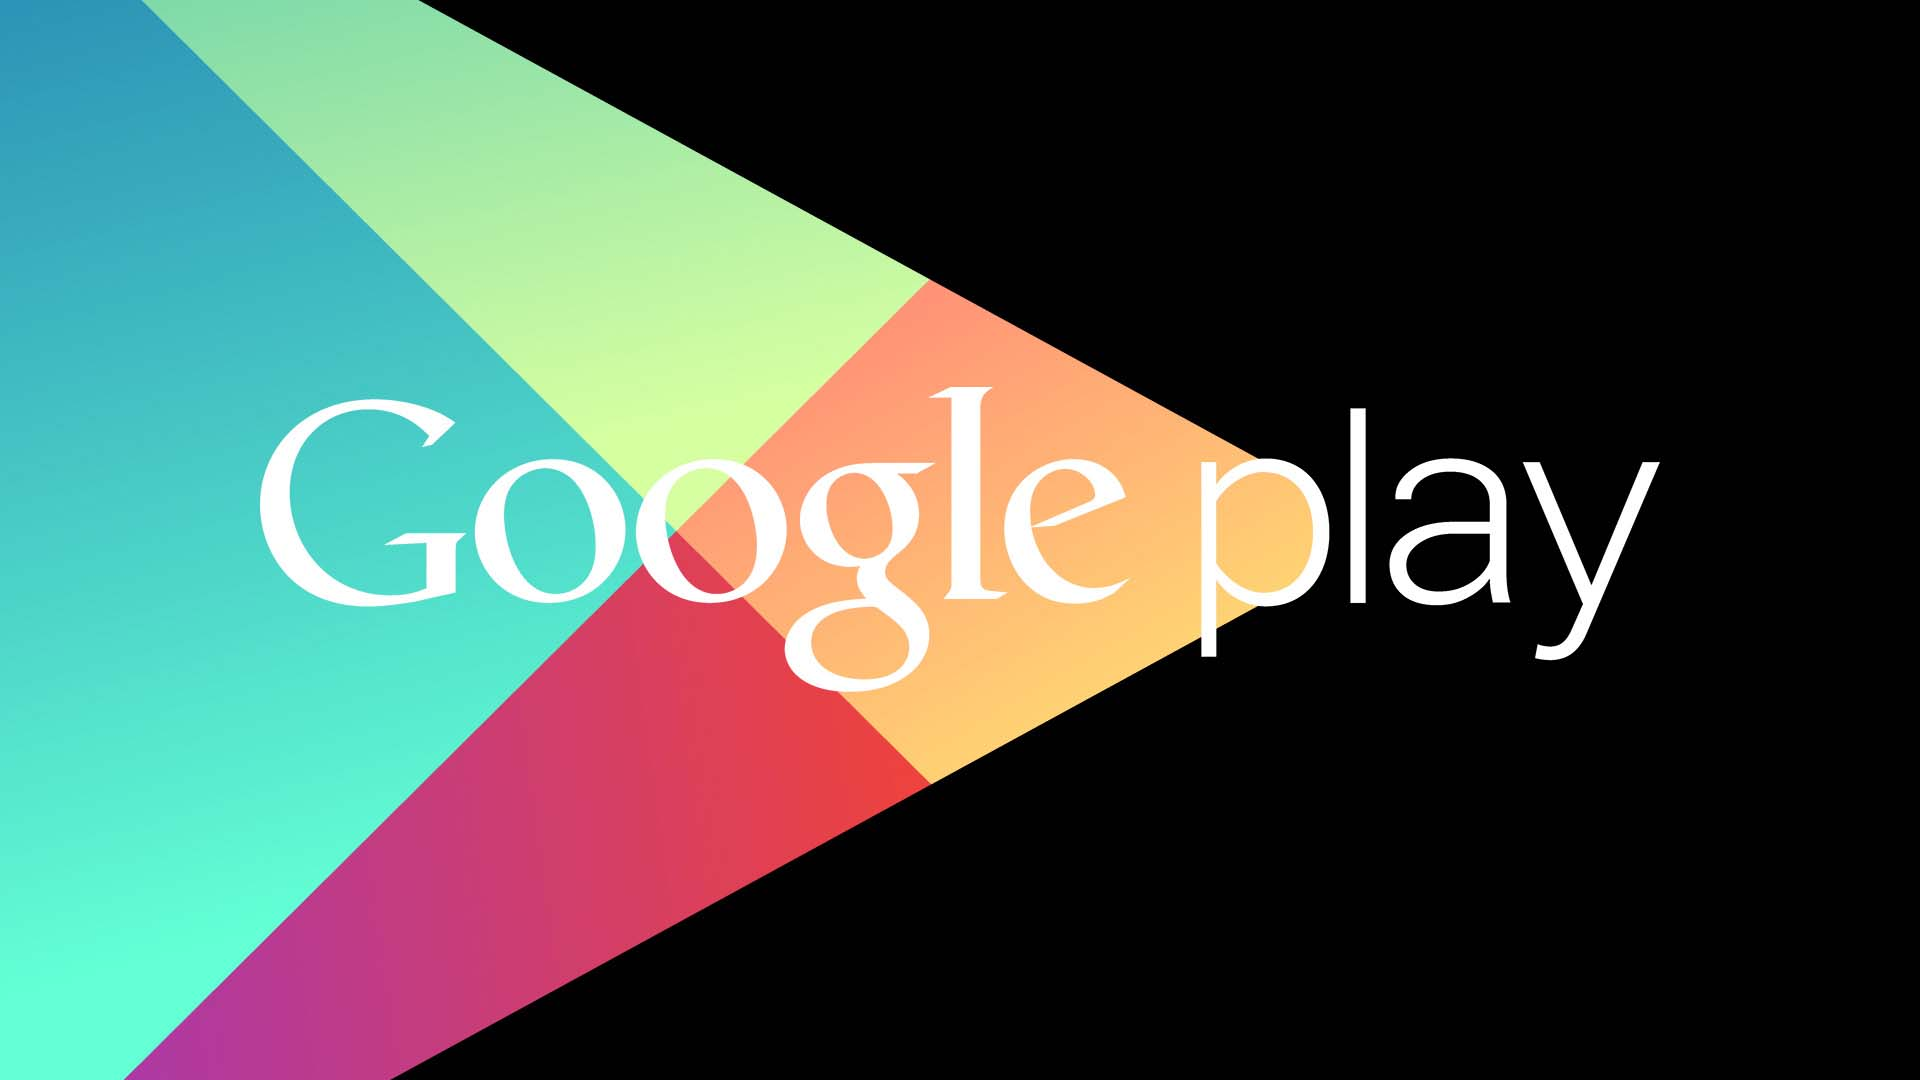 Google Play Store 7.1.11. APK Download Now Available: Here Are the Changes Added